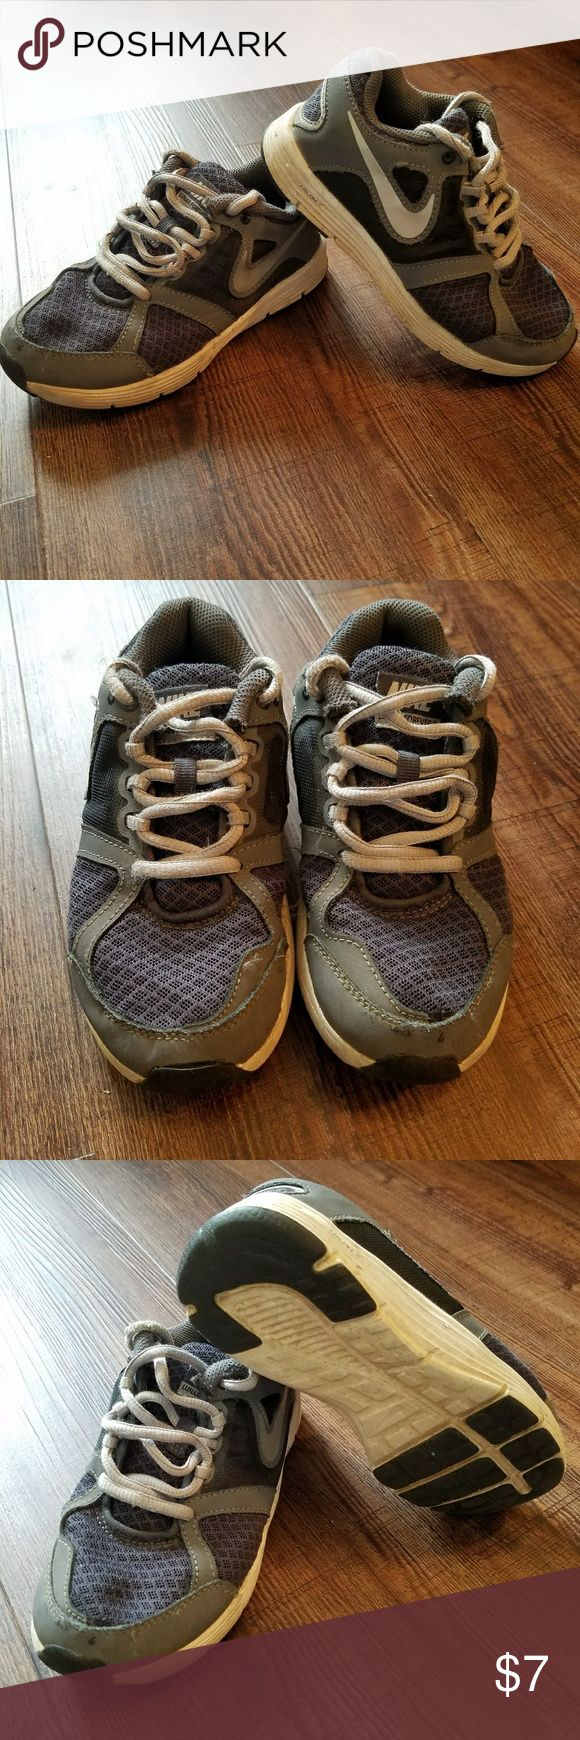 Boys Nike shoes Light / dark gray Nike shoes Size 12  Used condition Pet/smoke free home Offers welcomed! 15% off bundle 3 or more! Nike Shoes Sneakers